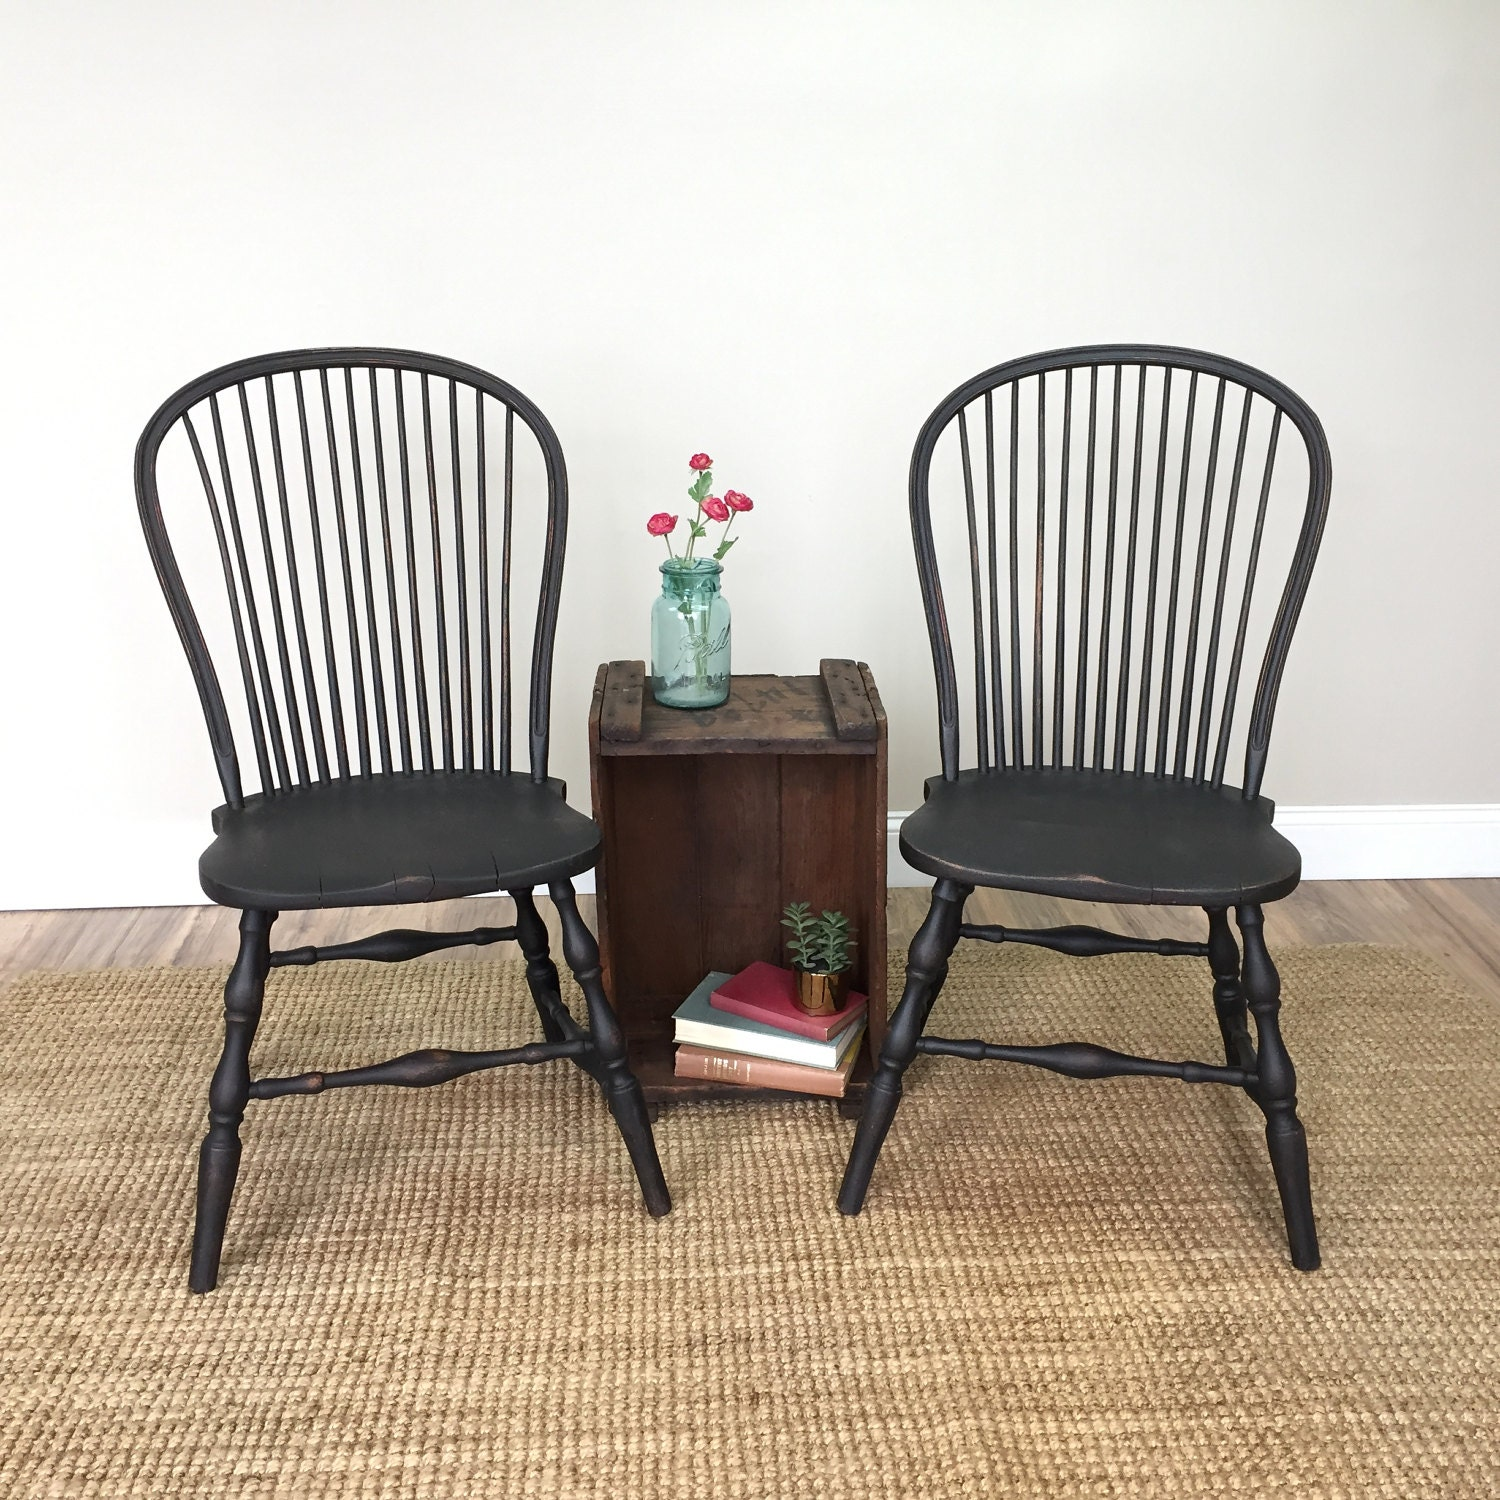 Black farmhouse chairs - Black Windsor Chairs Farmhouse Dining Chairs Antique Wooden Chairs Spindle Chair Country Cottage Furniture Fixer Upper Style